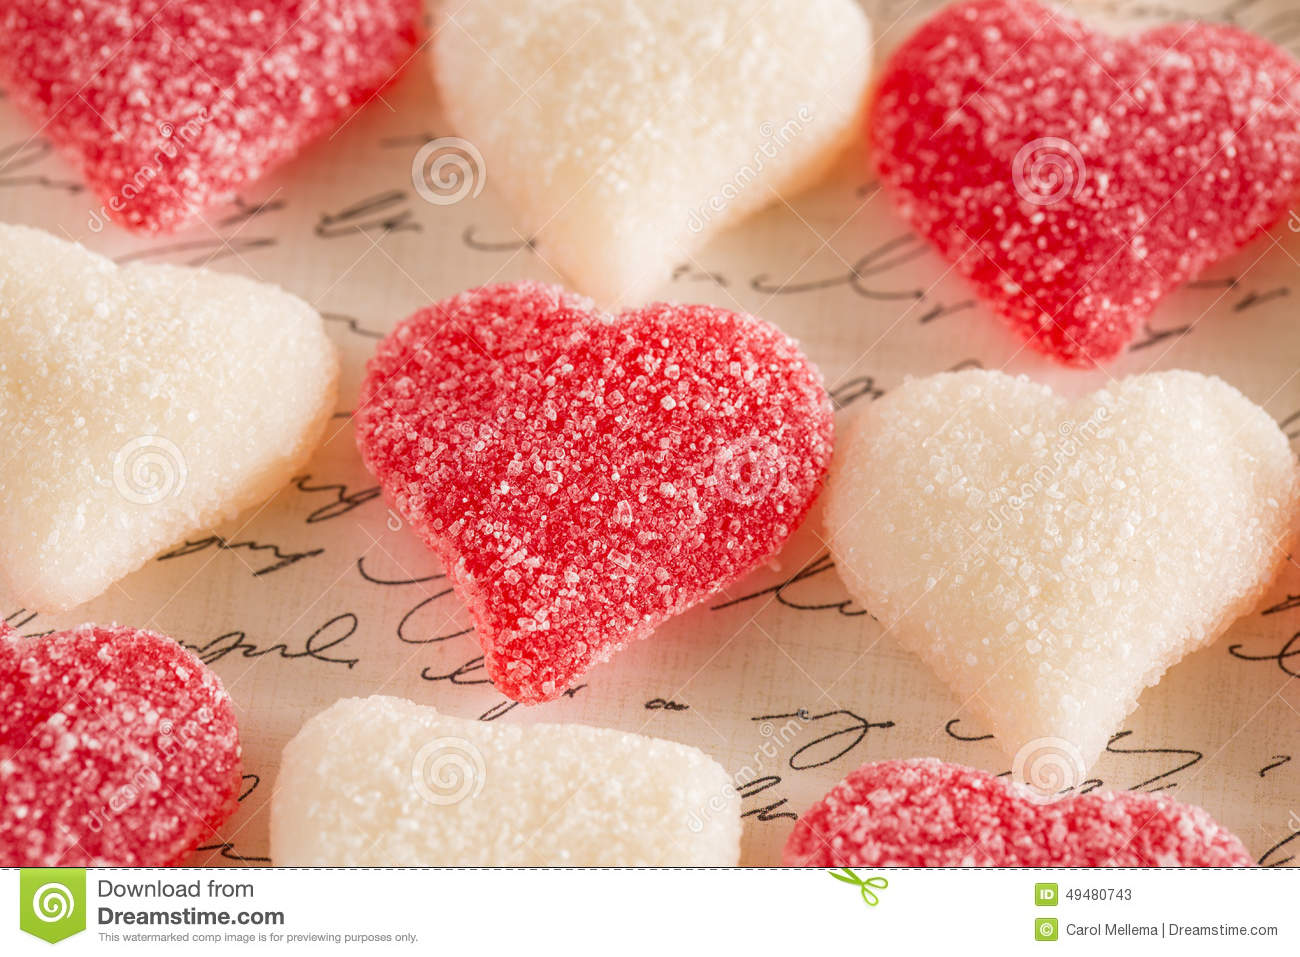 valentines day sugar gummy candy love hearts stock image - image of